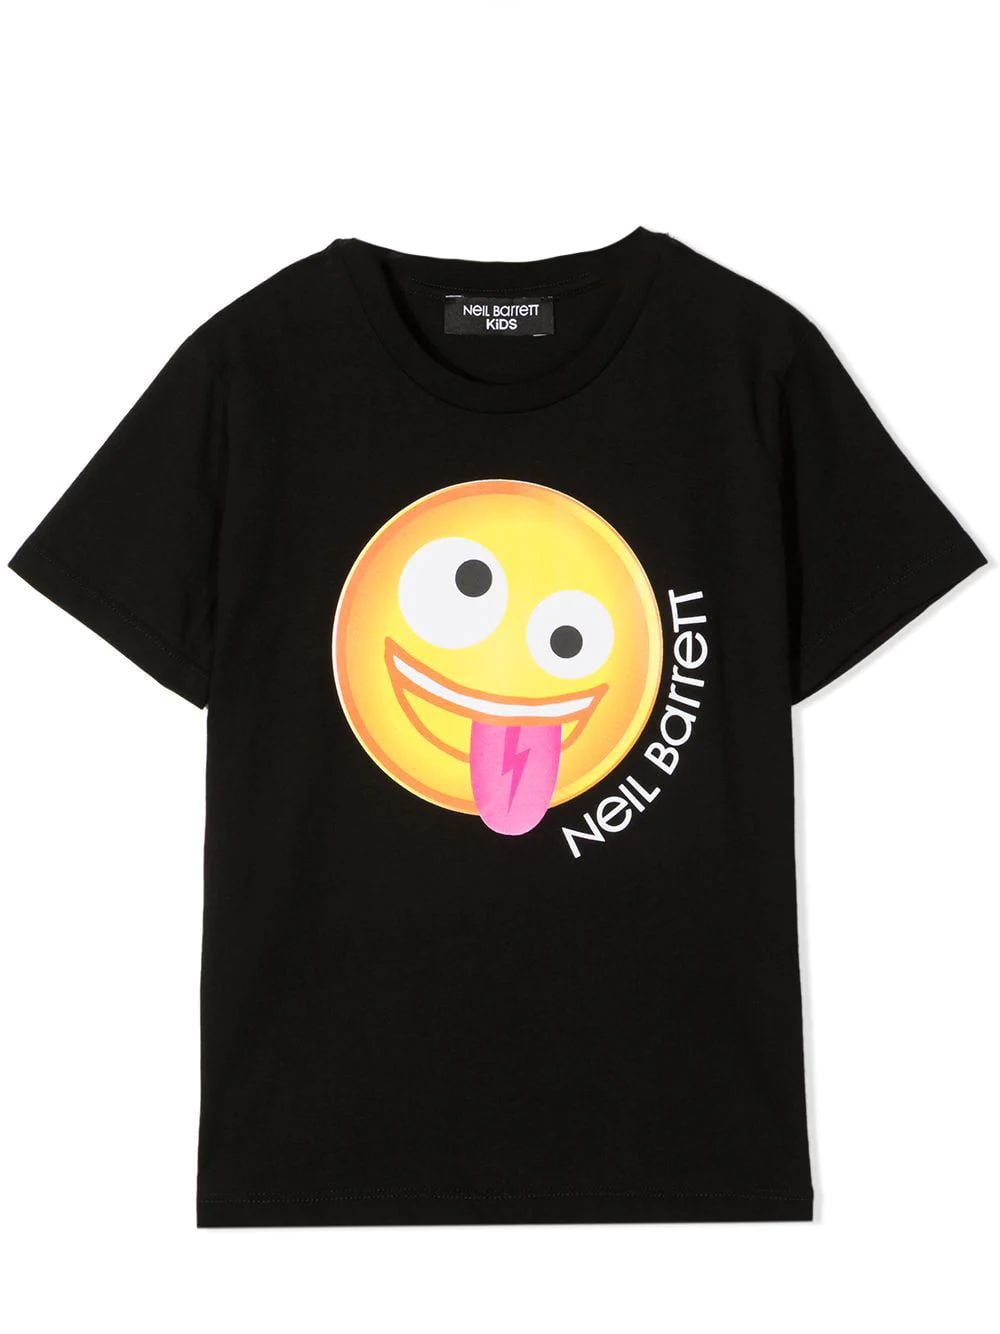 Neil Barrett Kids' Print T-shirt In Black